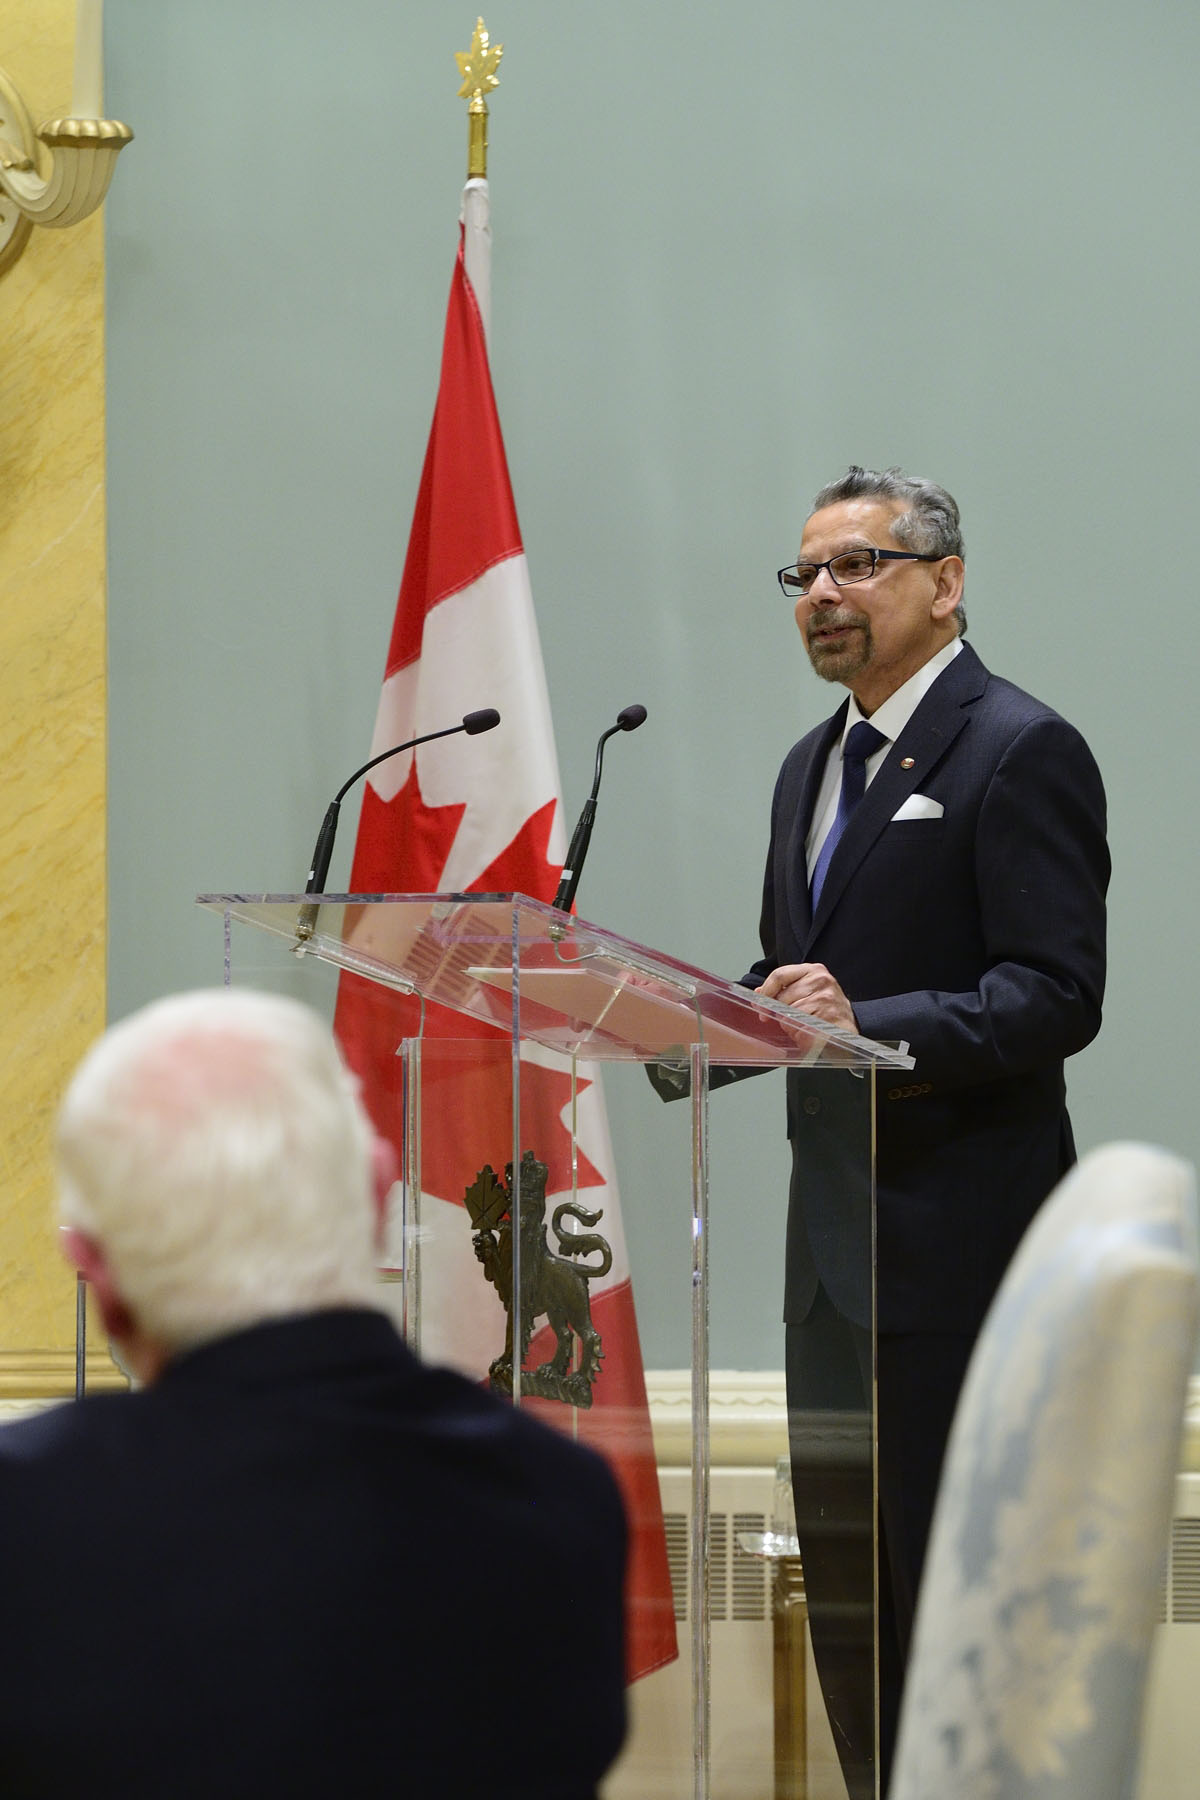 Dr. B. Mario Pinto, President of NSERC, delivered remarks and introduced each of the recipients.